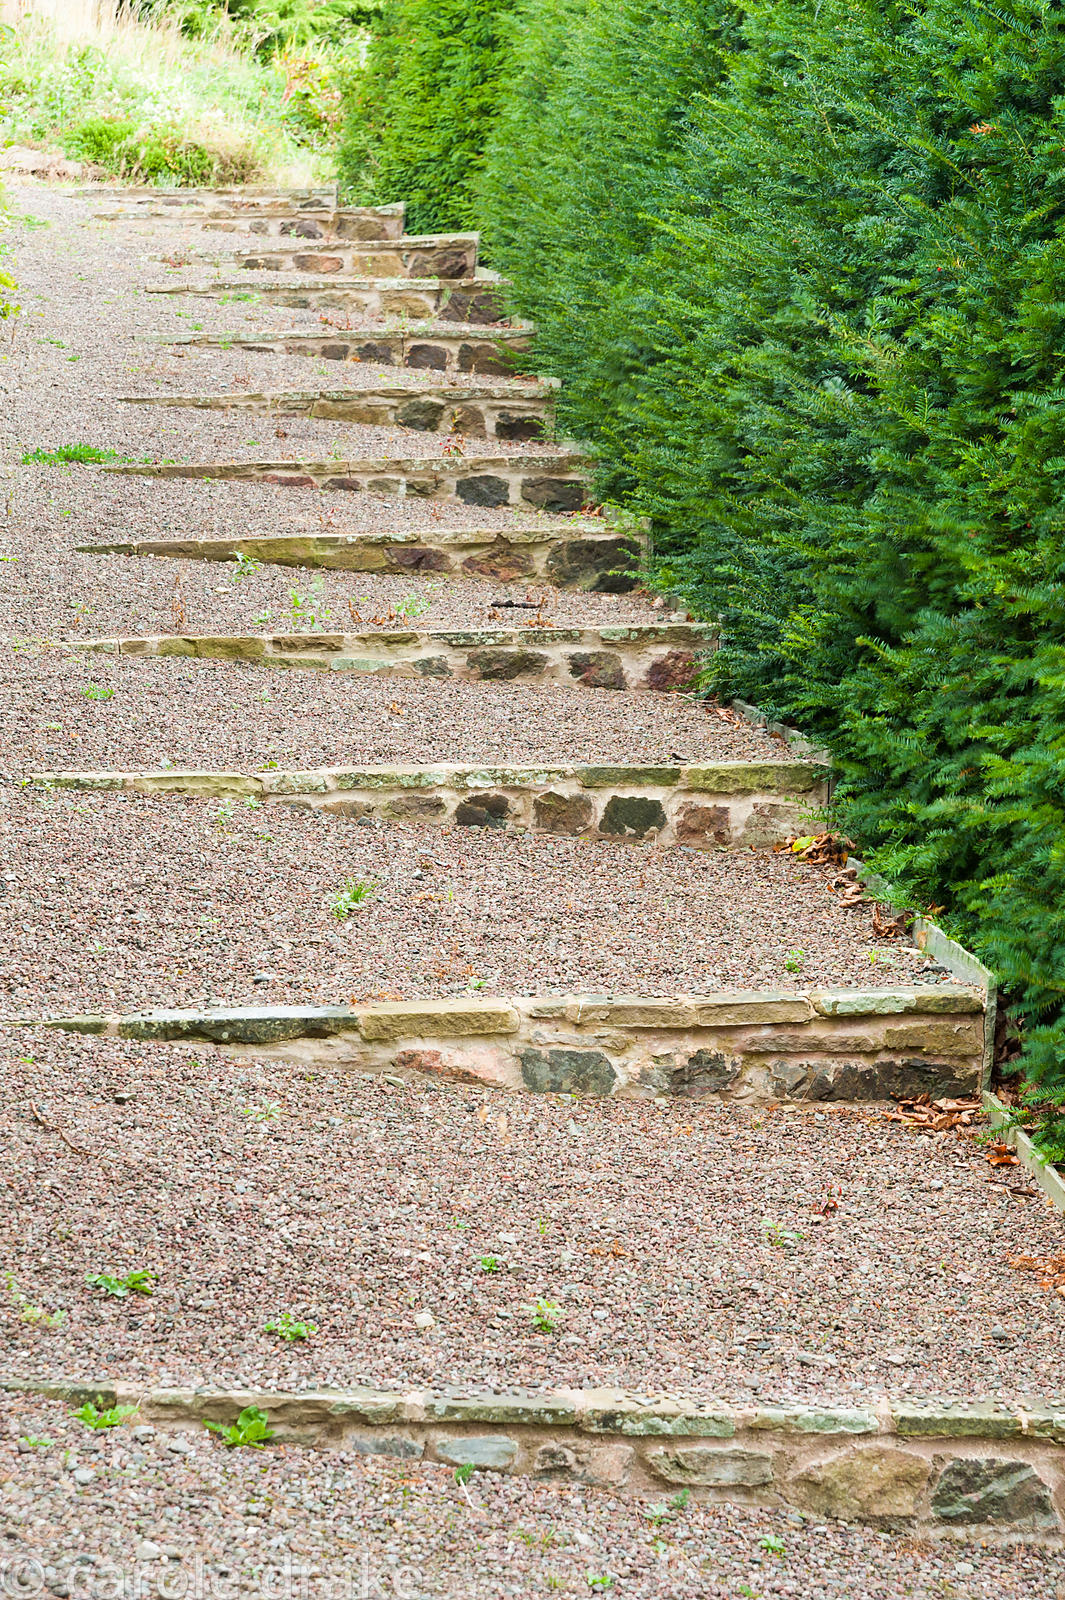 Shallow steps built into the sloping walled garden. Perrycroft, Upper Colwall, Herefordshire, UK